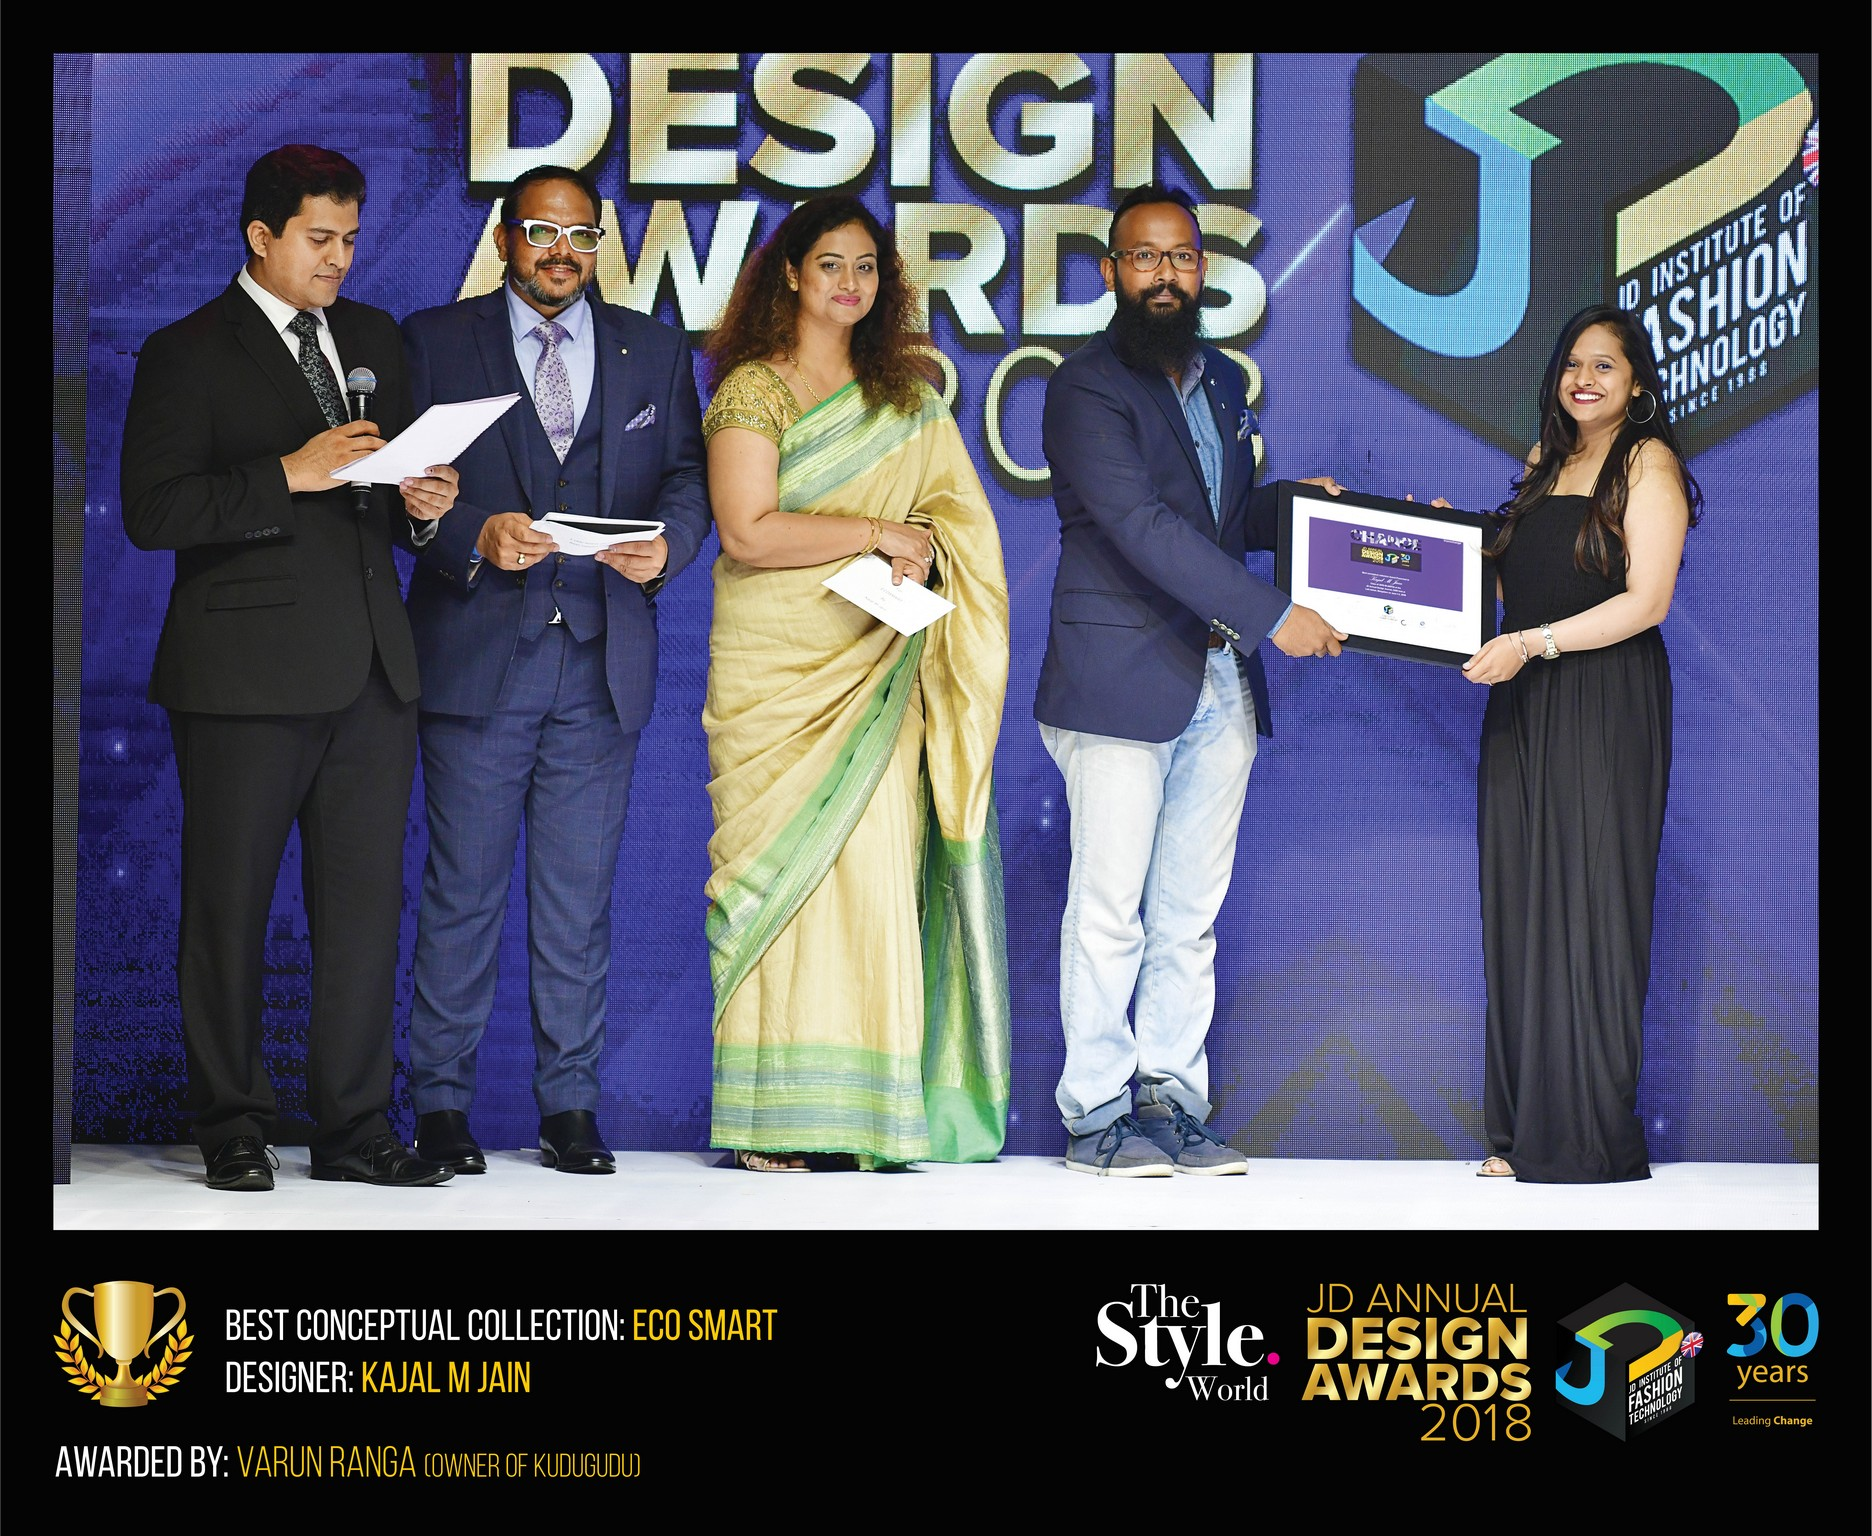 Eco Smart – Change – JD Annual Design Awards 2018 | Designer: Kajal Jain (ADFD 2015) | Photography : Jerin Nath (@jerin_nath) eco smart - 7 - Eco Smart – Change – JD Annual Design Awards 2018